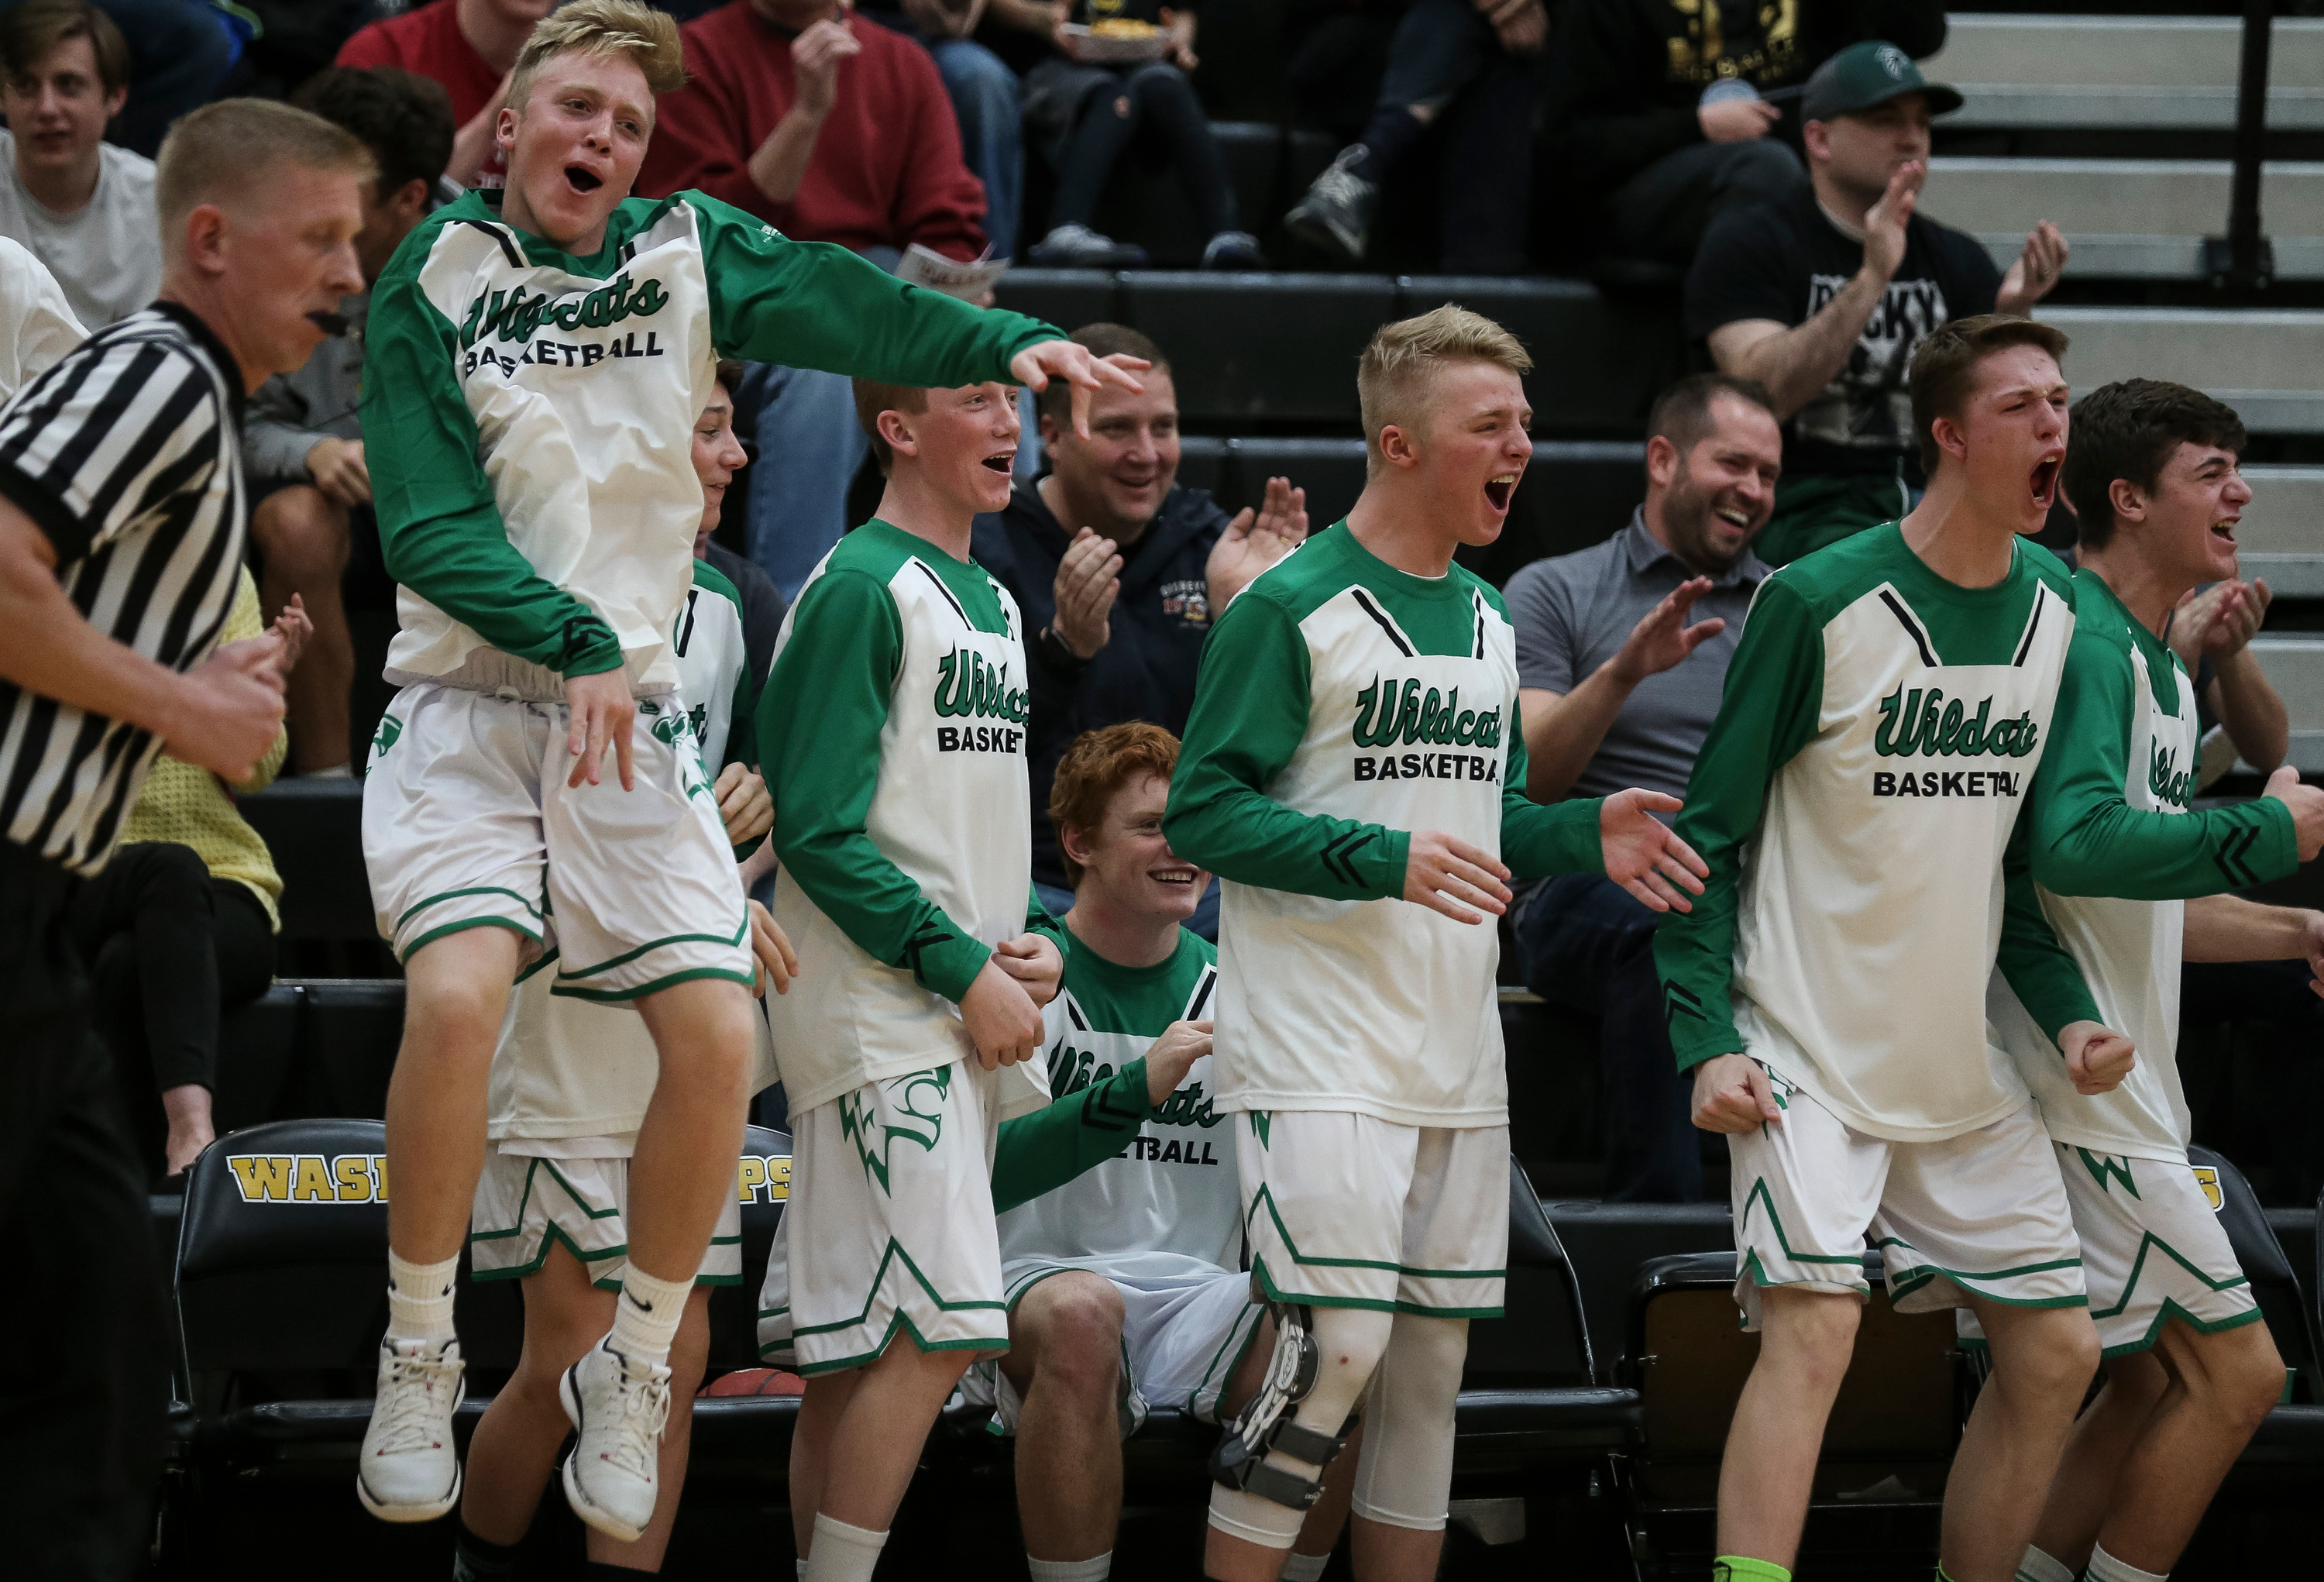 Here's your first look at the 2018-19 high school boys basketball schedules for each team